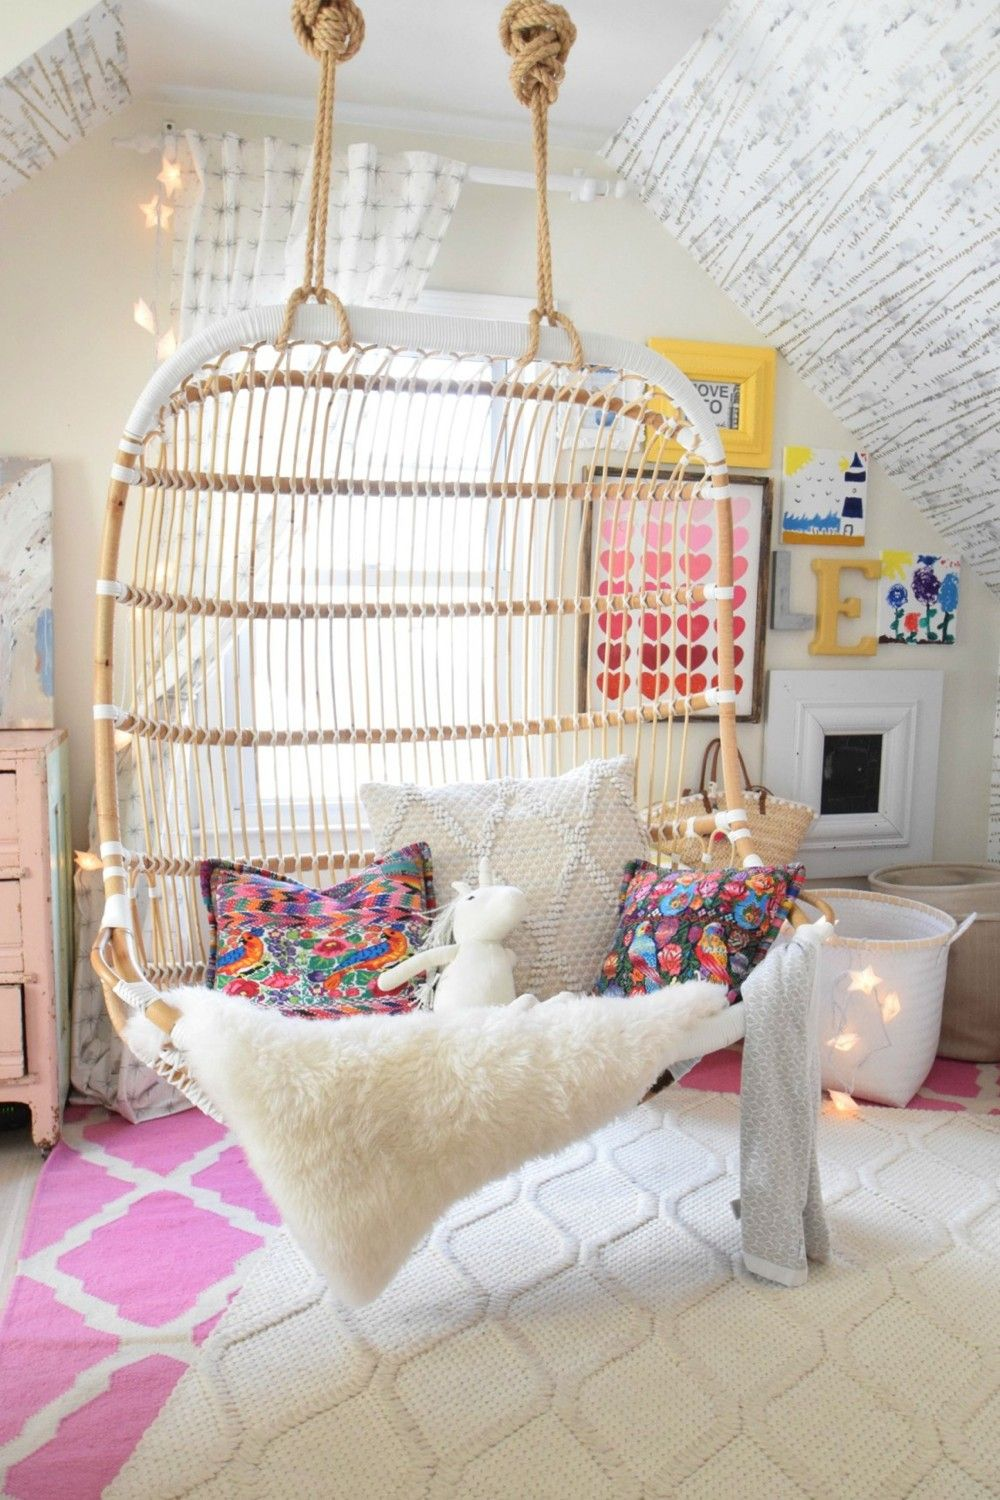 Teenagers Room Design: Pin On DIY ♥ Ideas ♥ Crafts ♥ Creations ♥ Projects